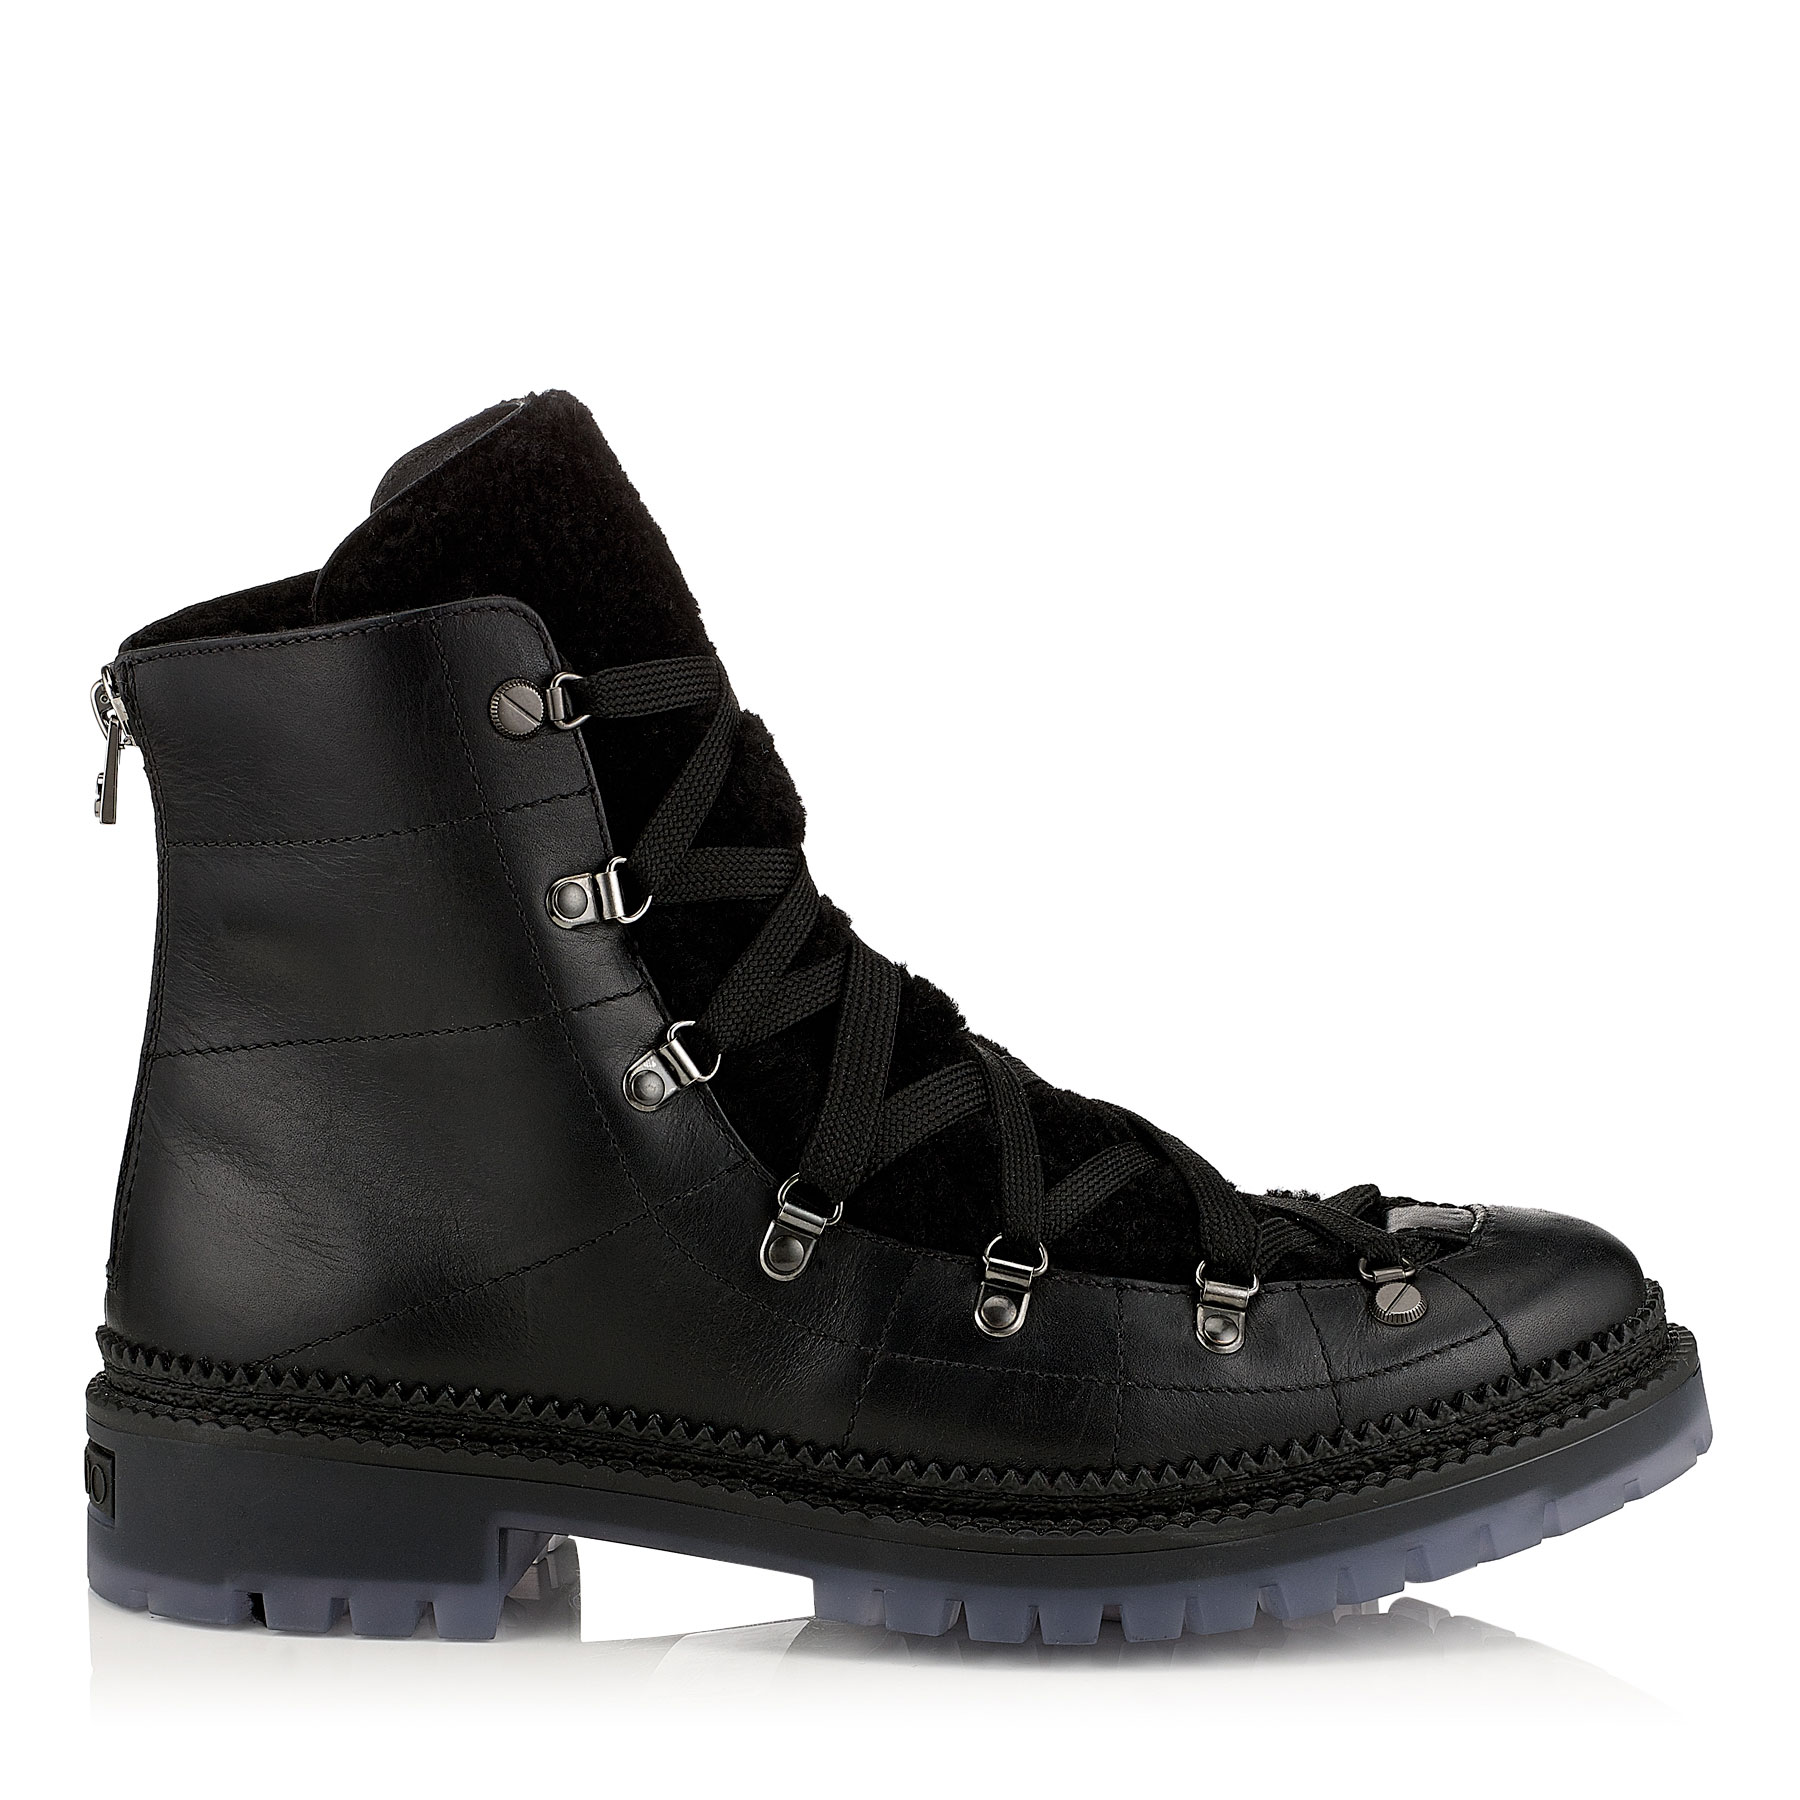 DIMITRI Black Leather and Shearling Boots